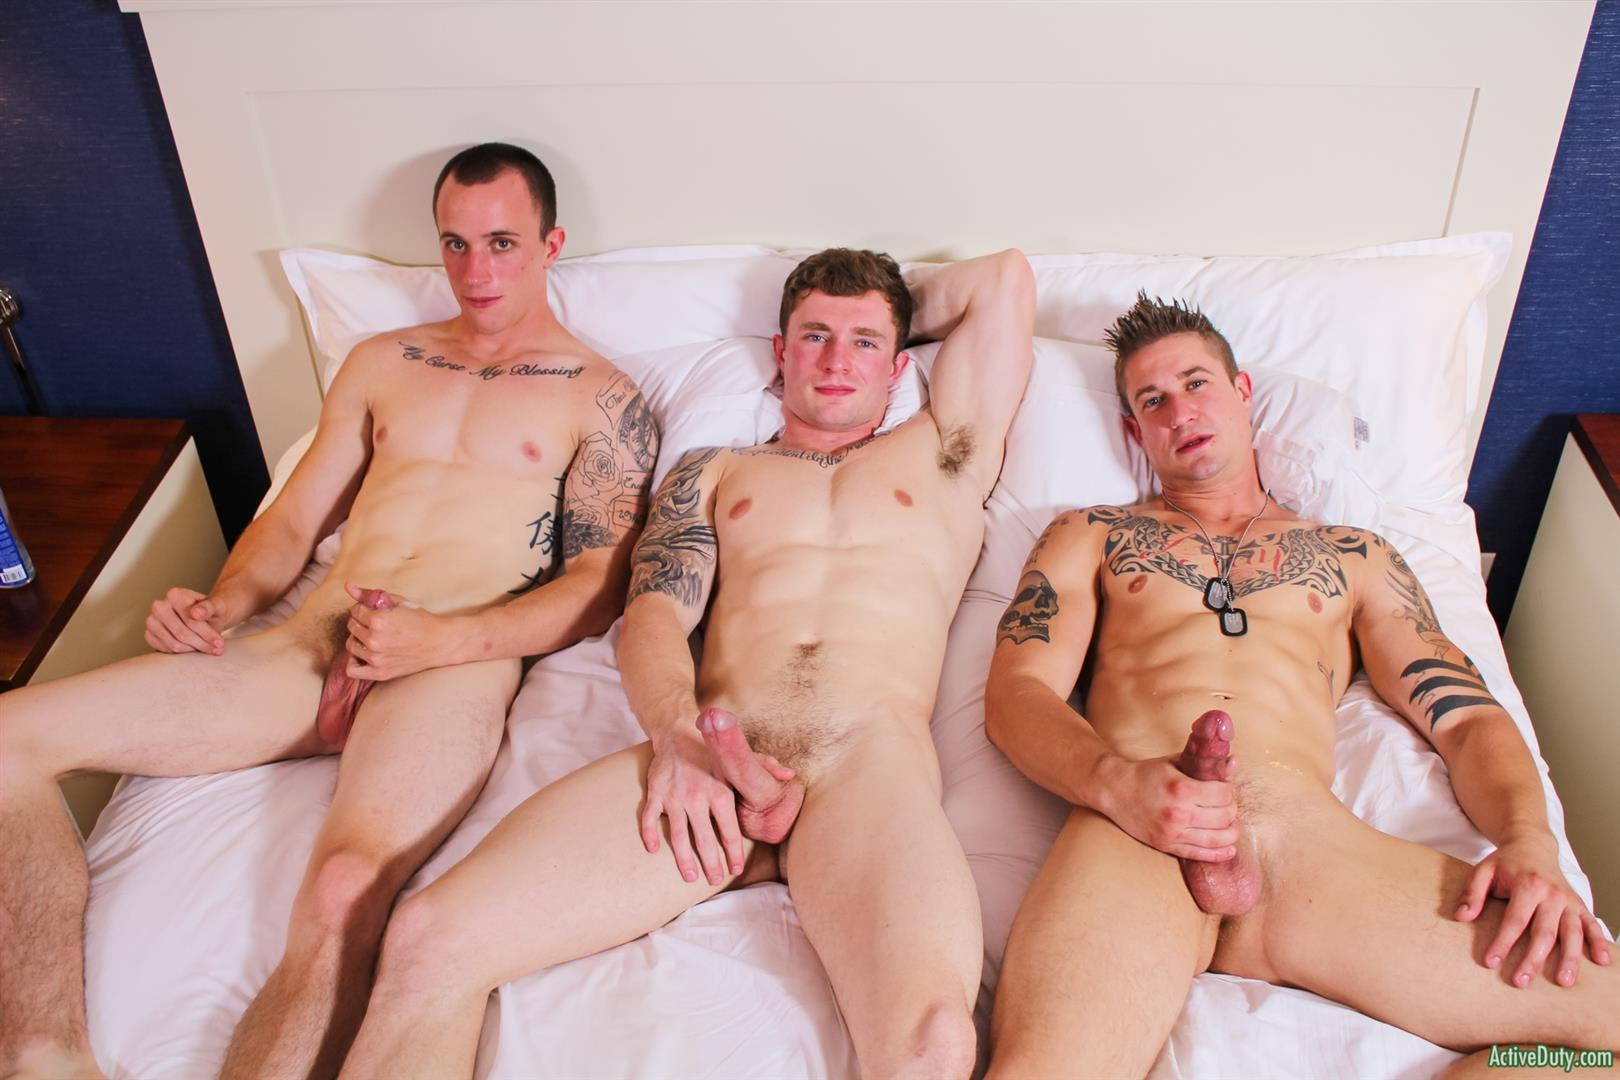 Active-Duty-Threeway-Army-Guys-Bareback-Sex-Video-Amateur-Gay-Porn-15 Big Dick Muscular Army Guys In A Bareback Threeway